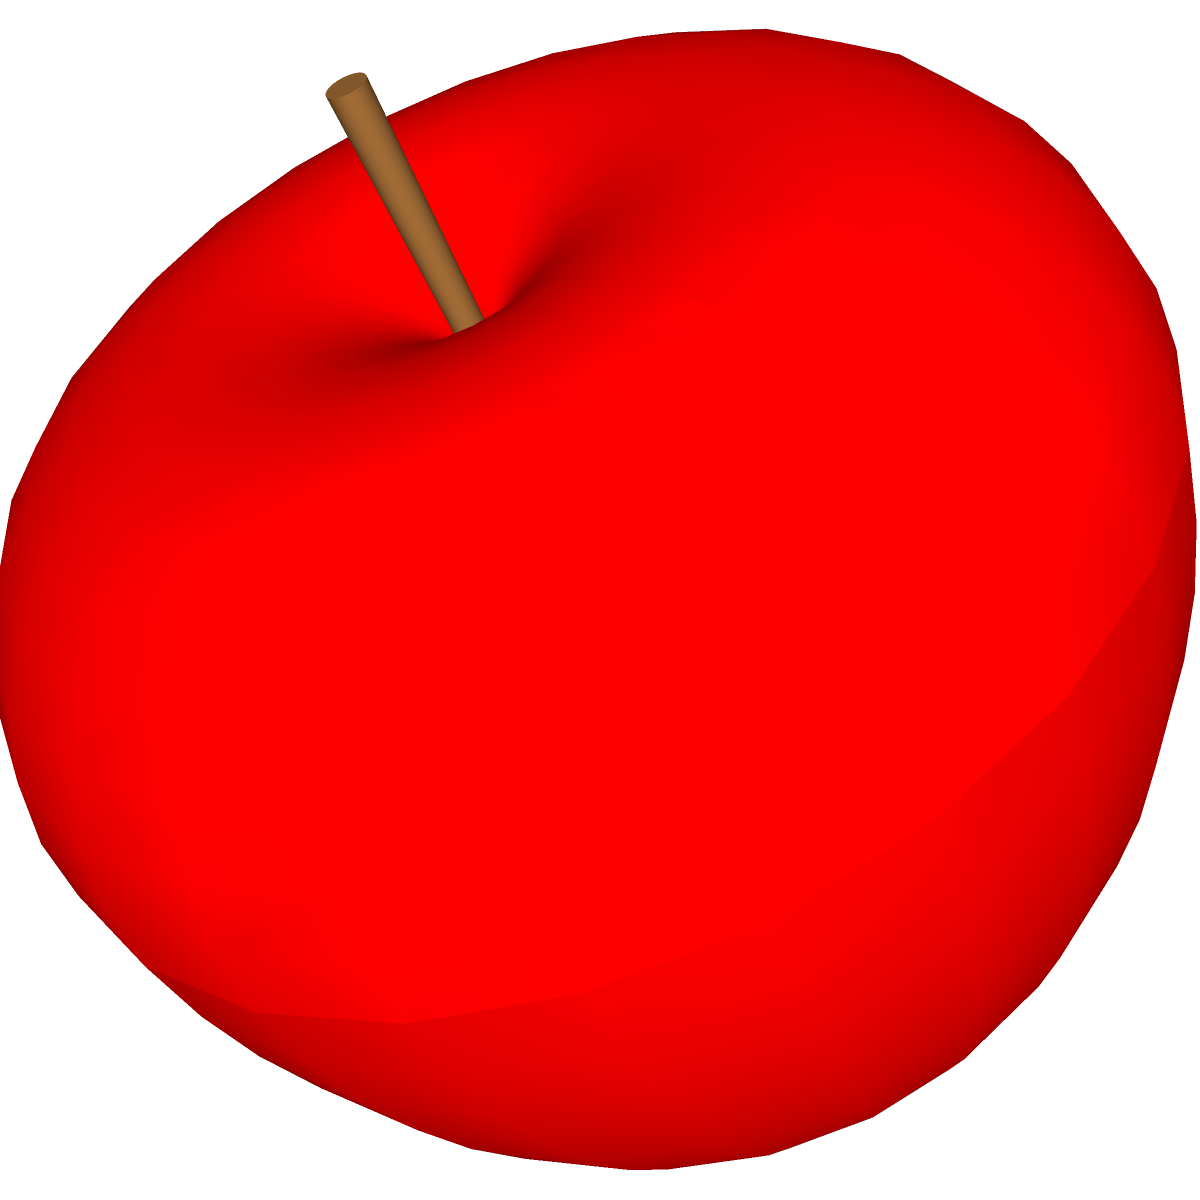 Red Apple Clip Art - Clipart library-Red Apple Clip Art - Clipart library-16